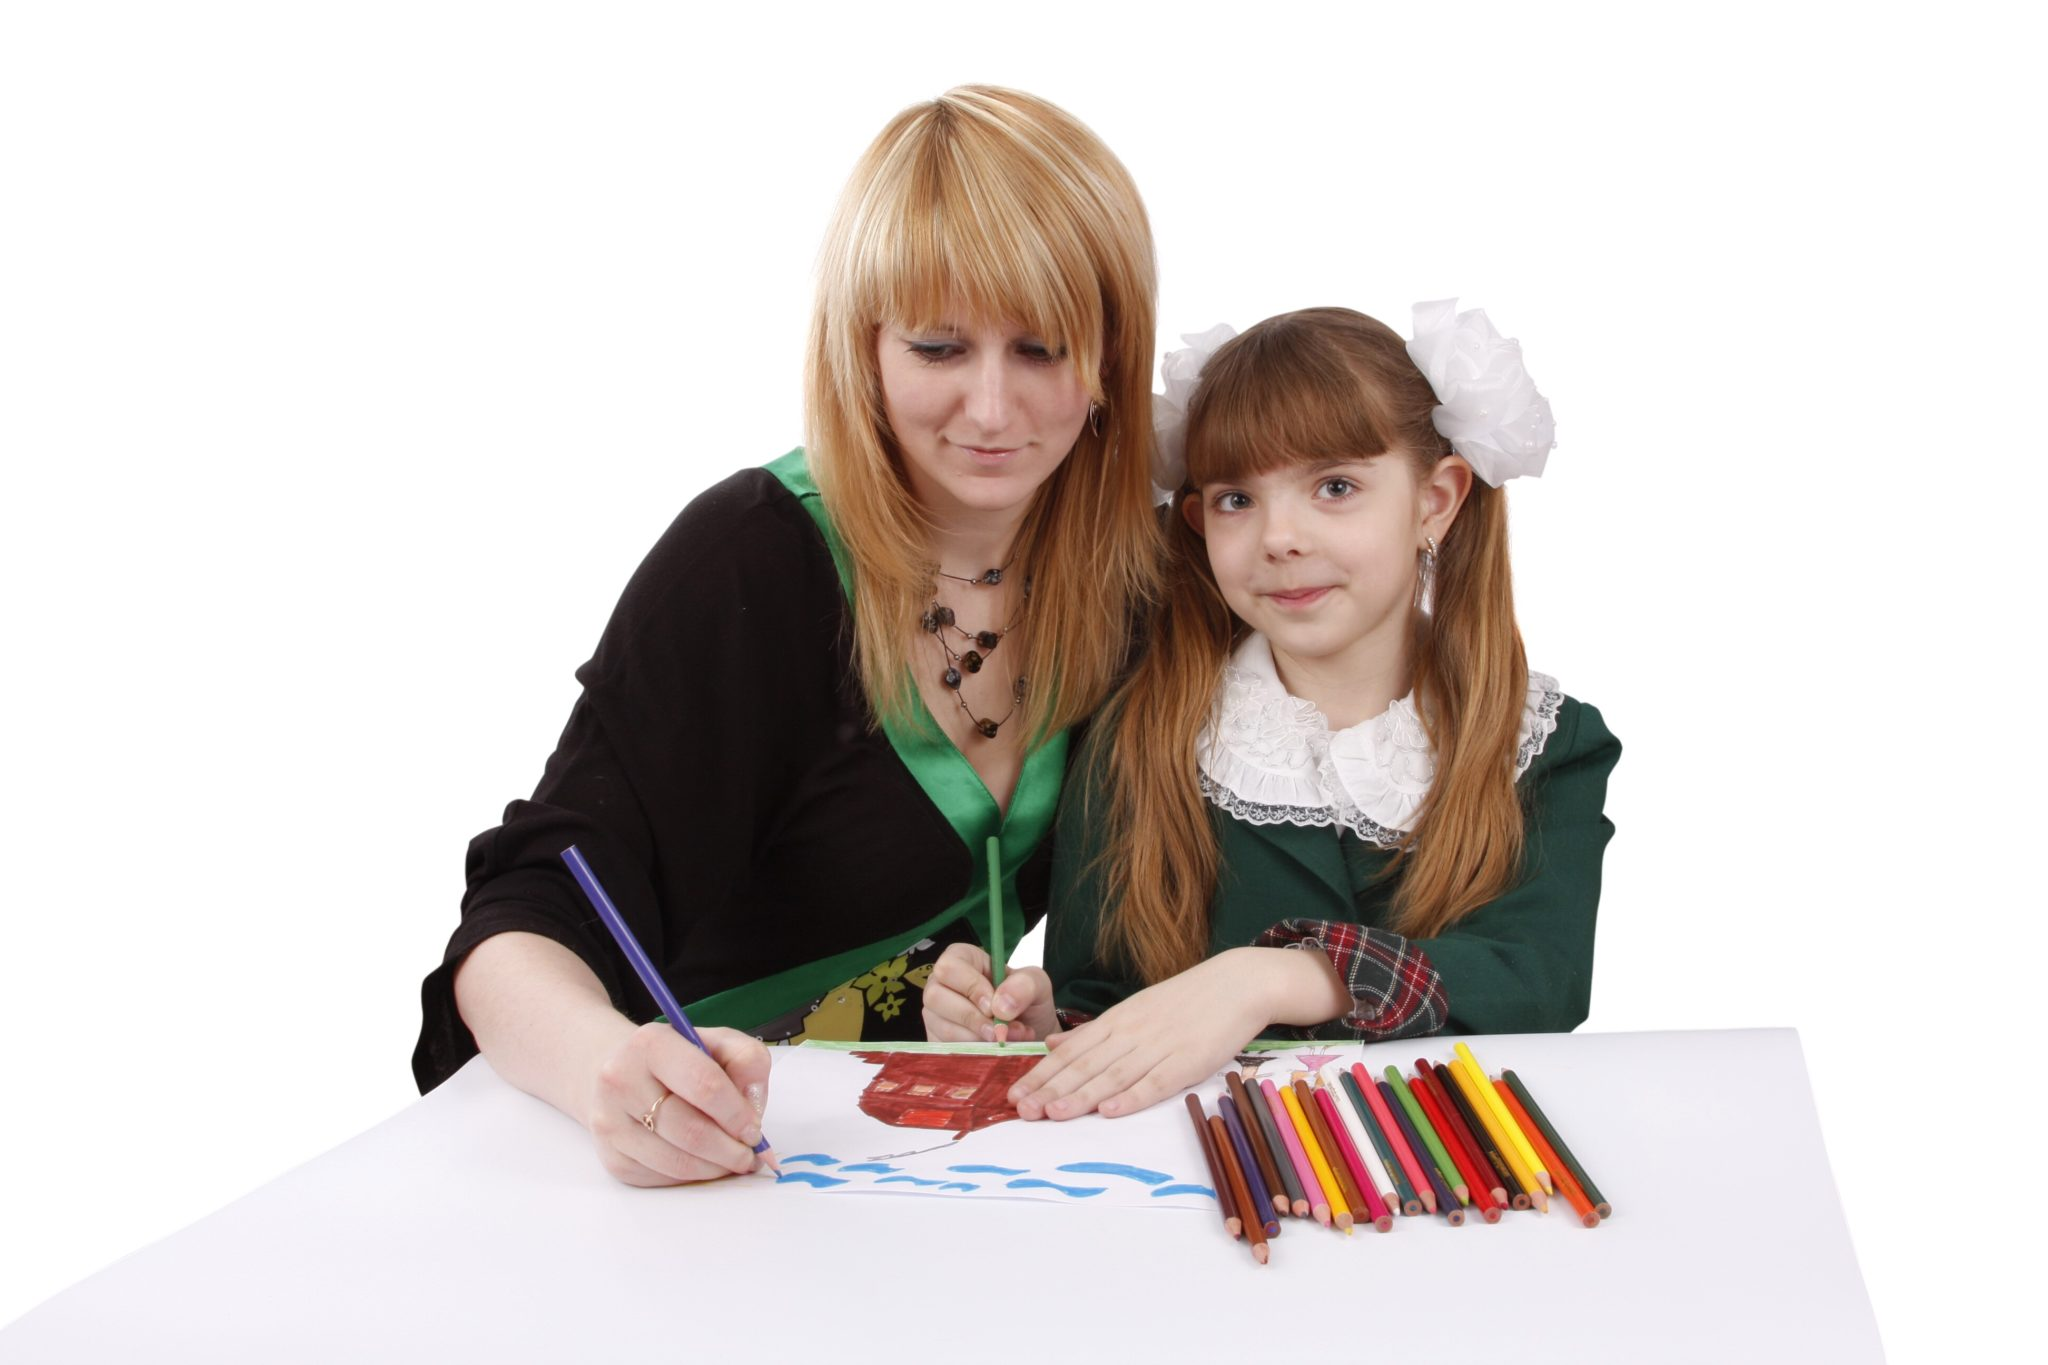 Mother and daughter painting together.